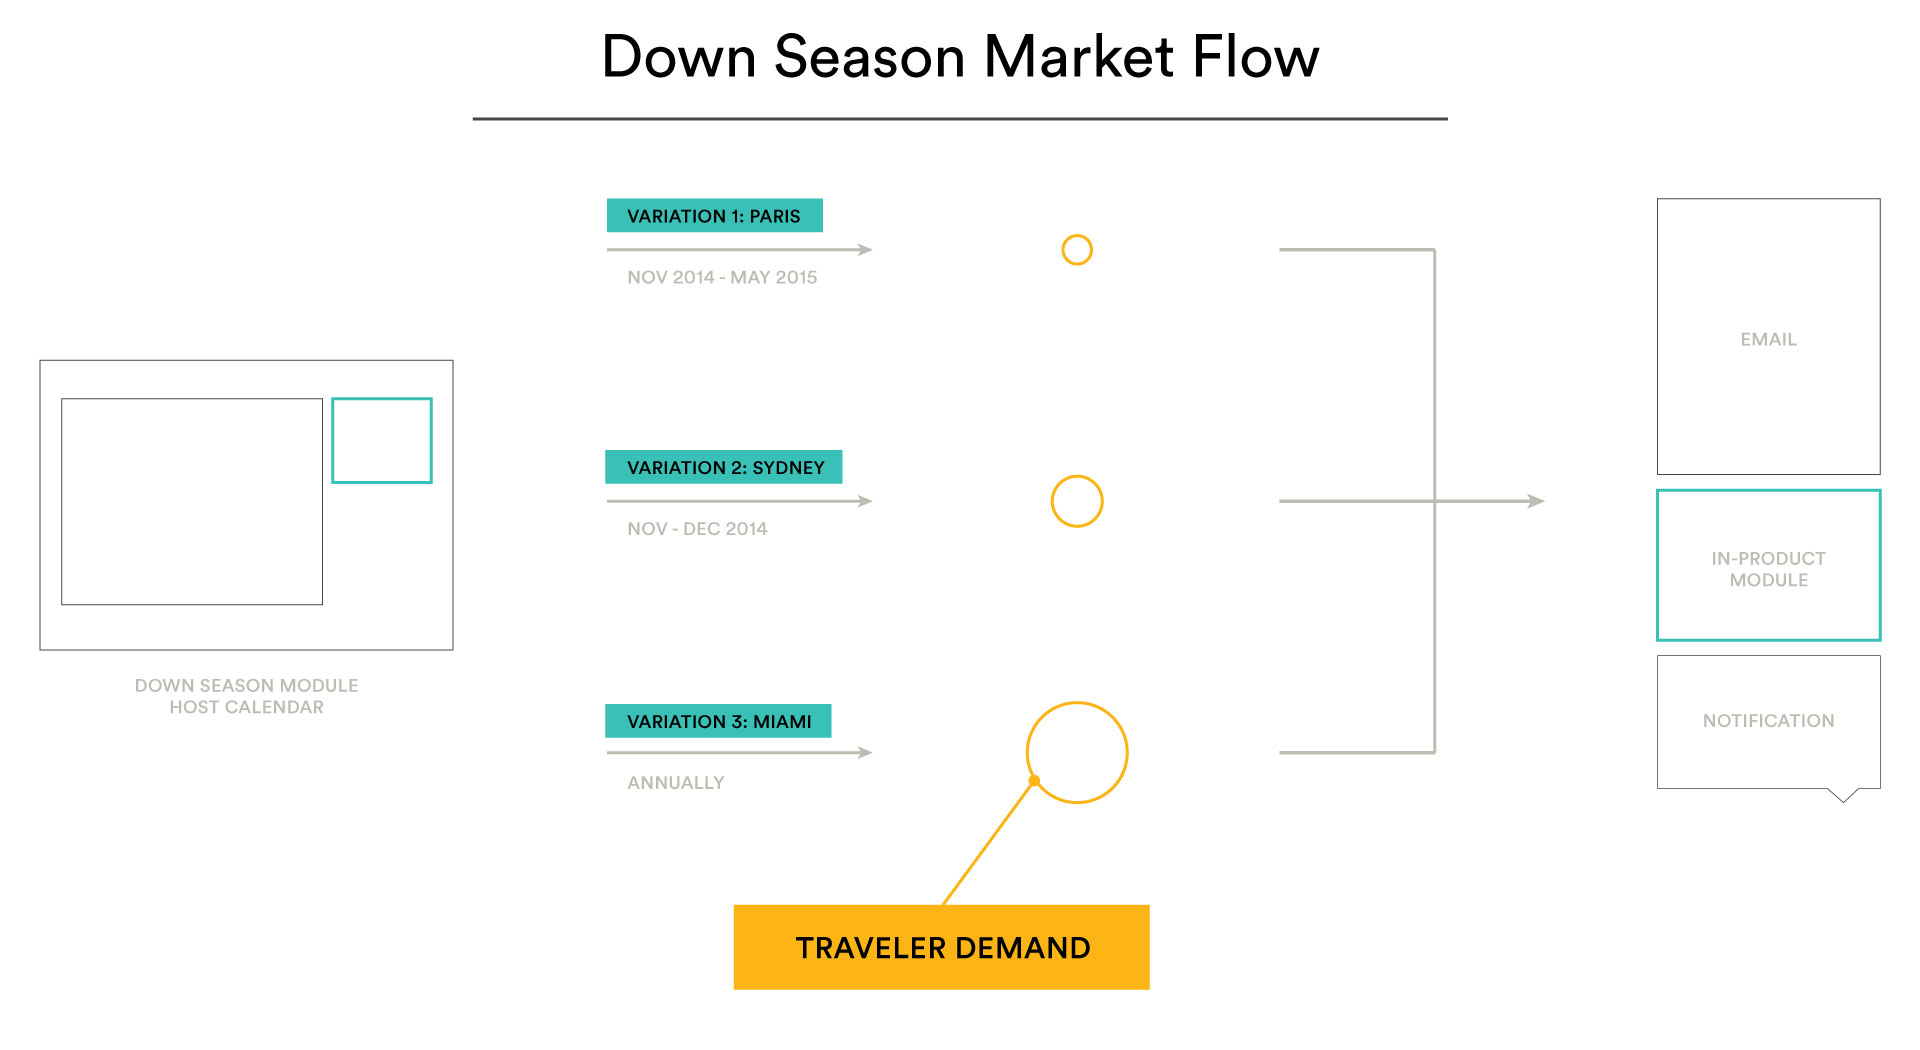 Example market flow showing variations of modules and messaging needed based on fluctuations in market demand